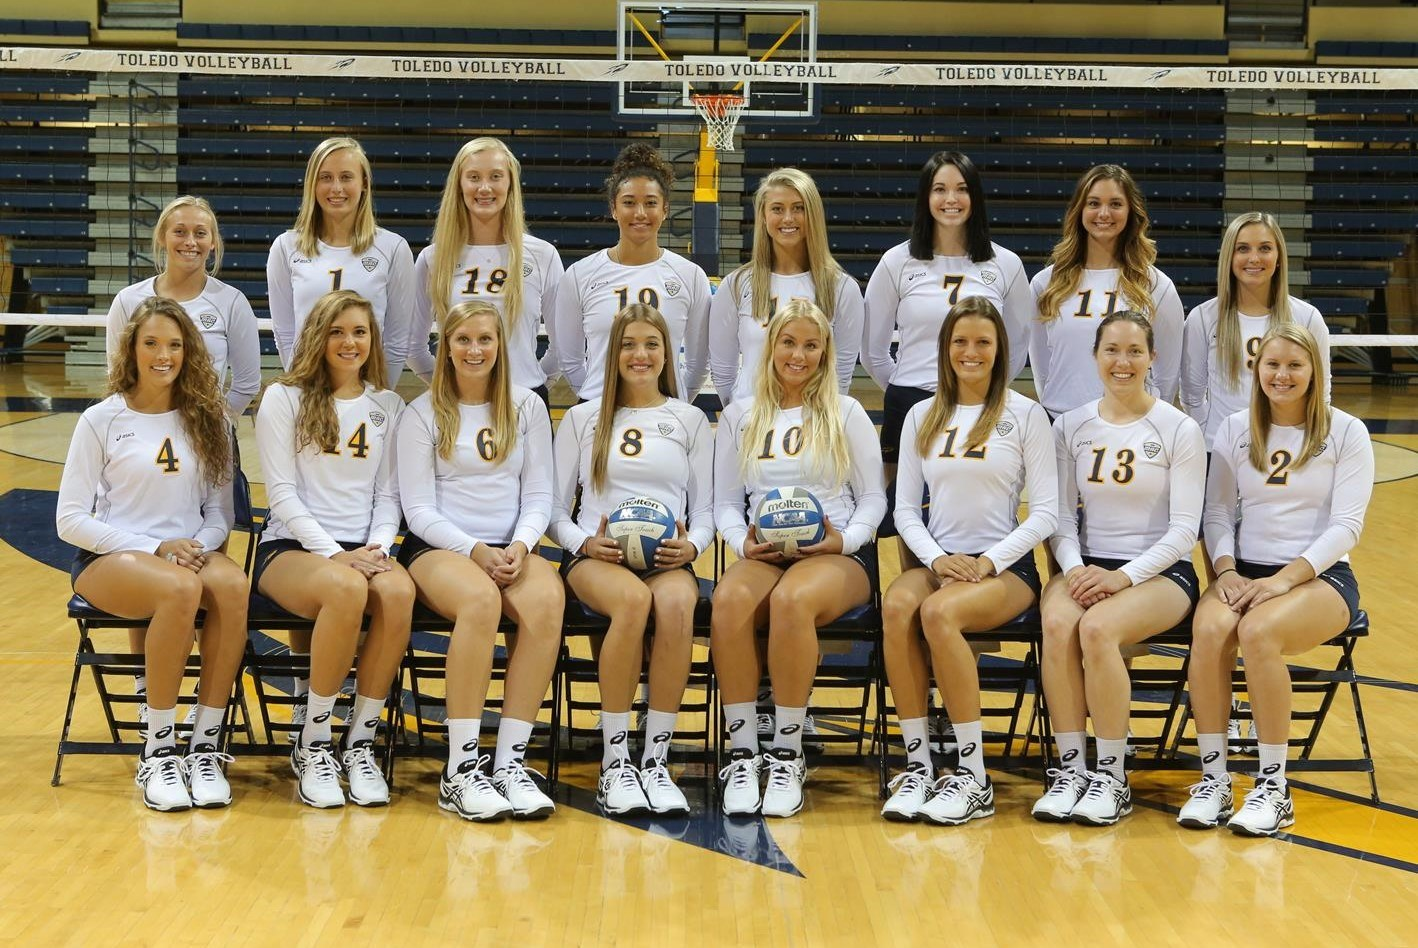 2016 Women S Volleyball Roster University Of Toledo Athletics